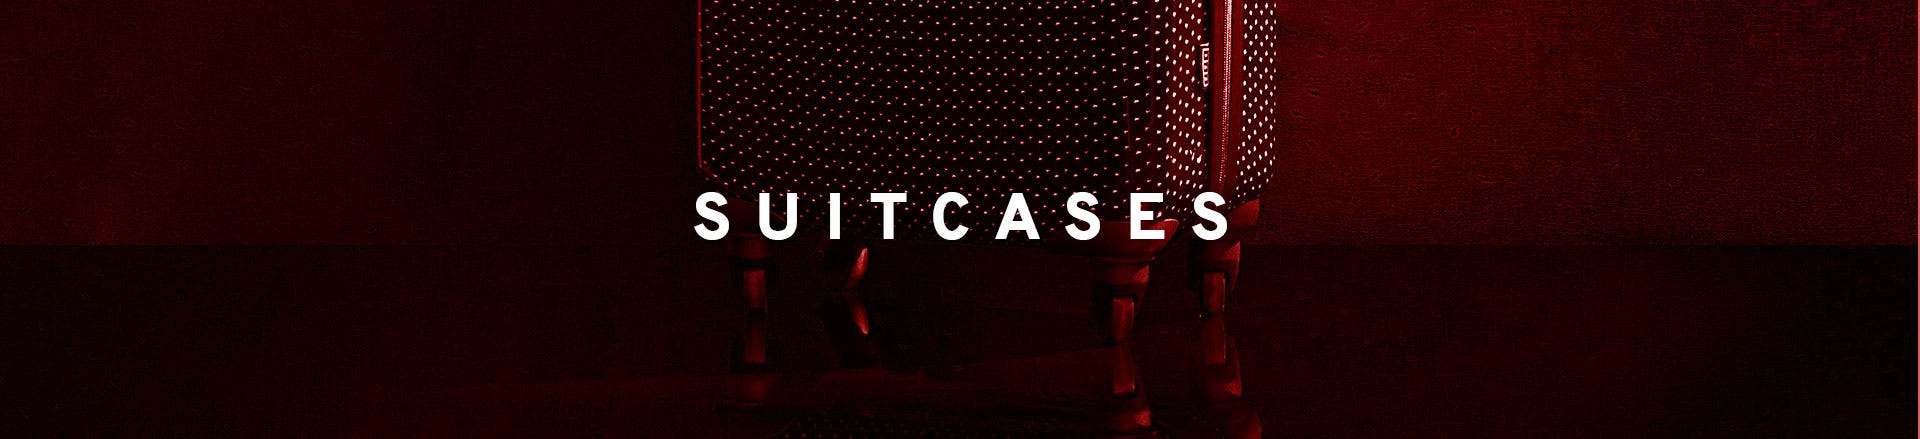 Suitcases by Misako